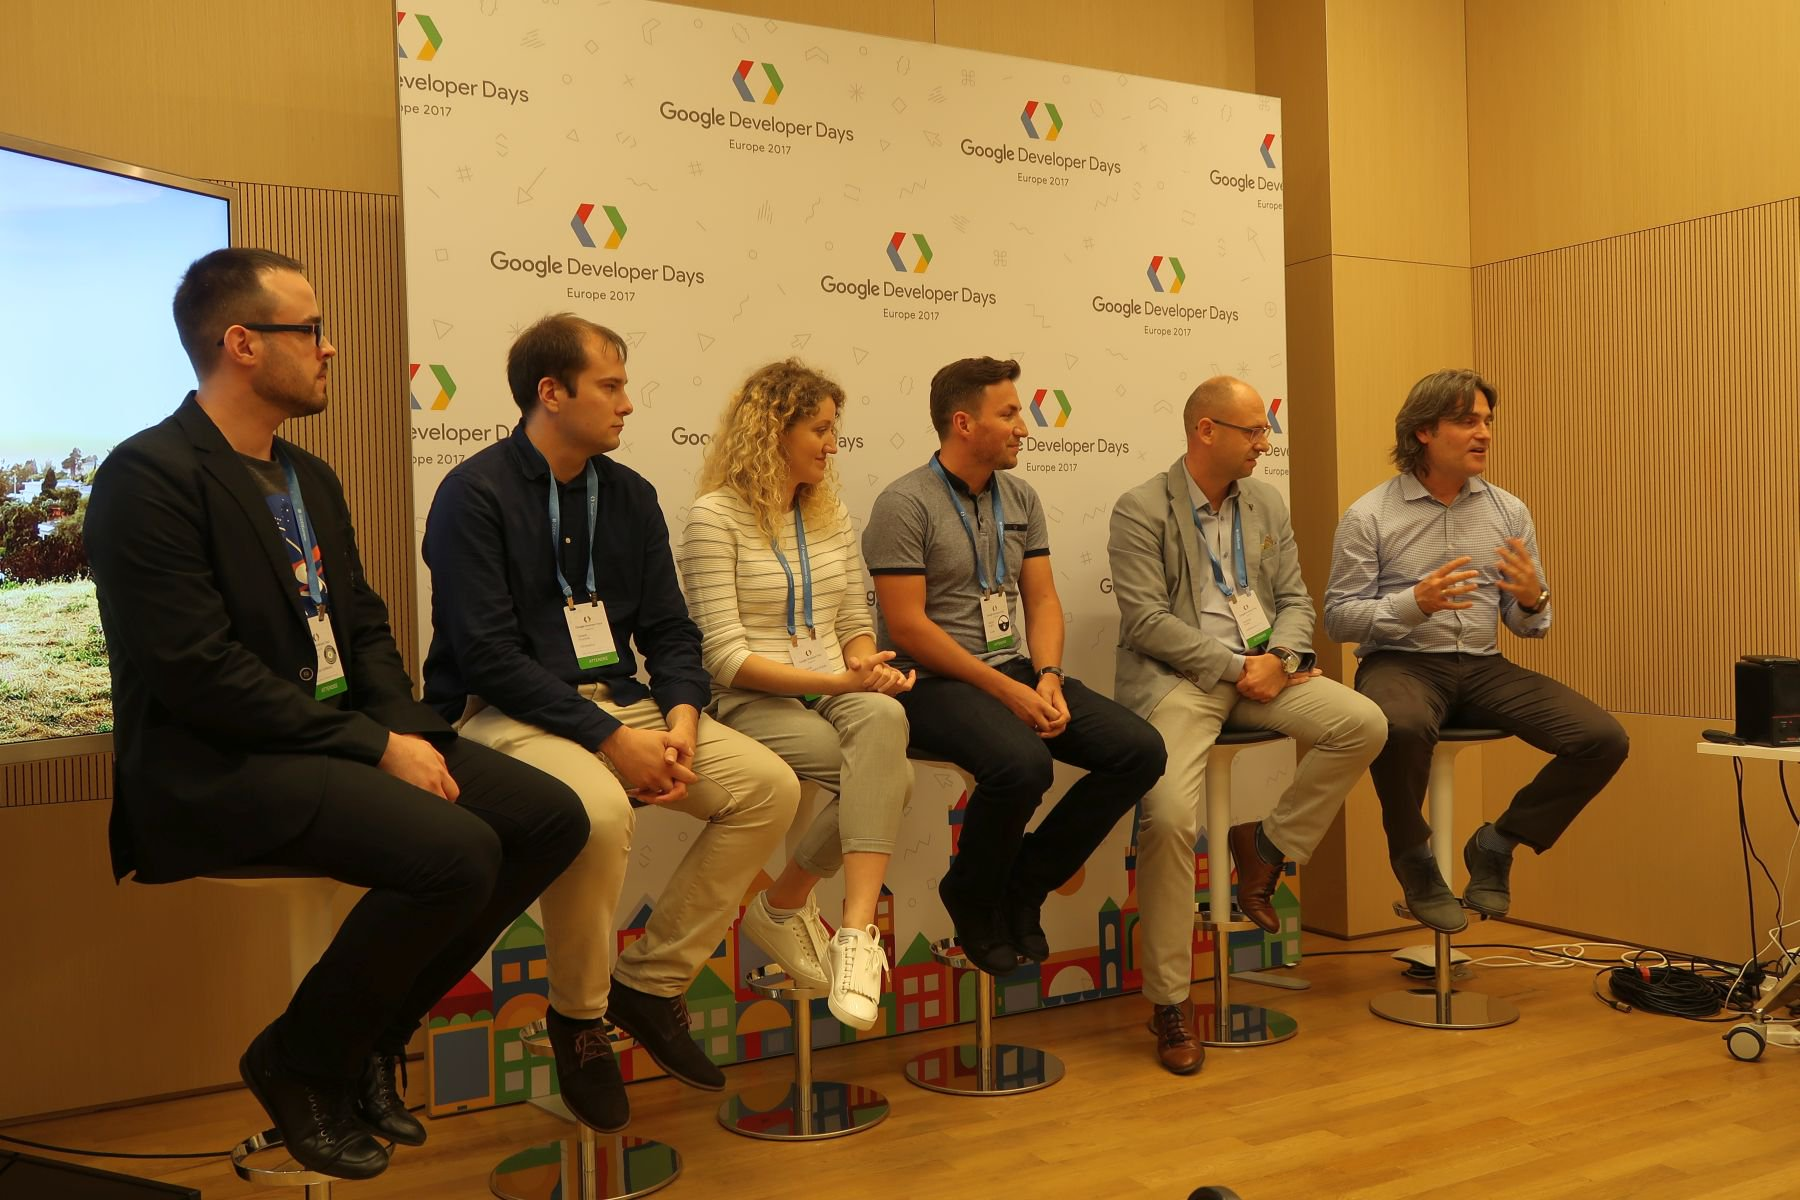 Discussion panel with experts about the growth of the Android ecosystem and the CEE partners